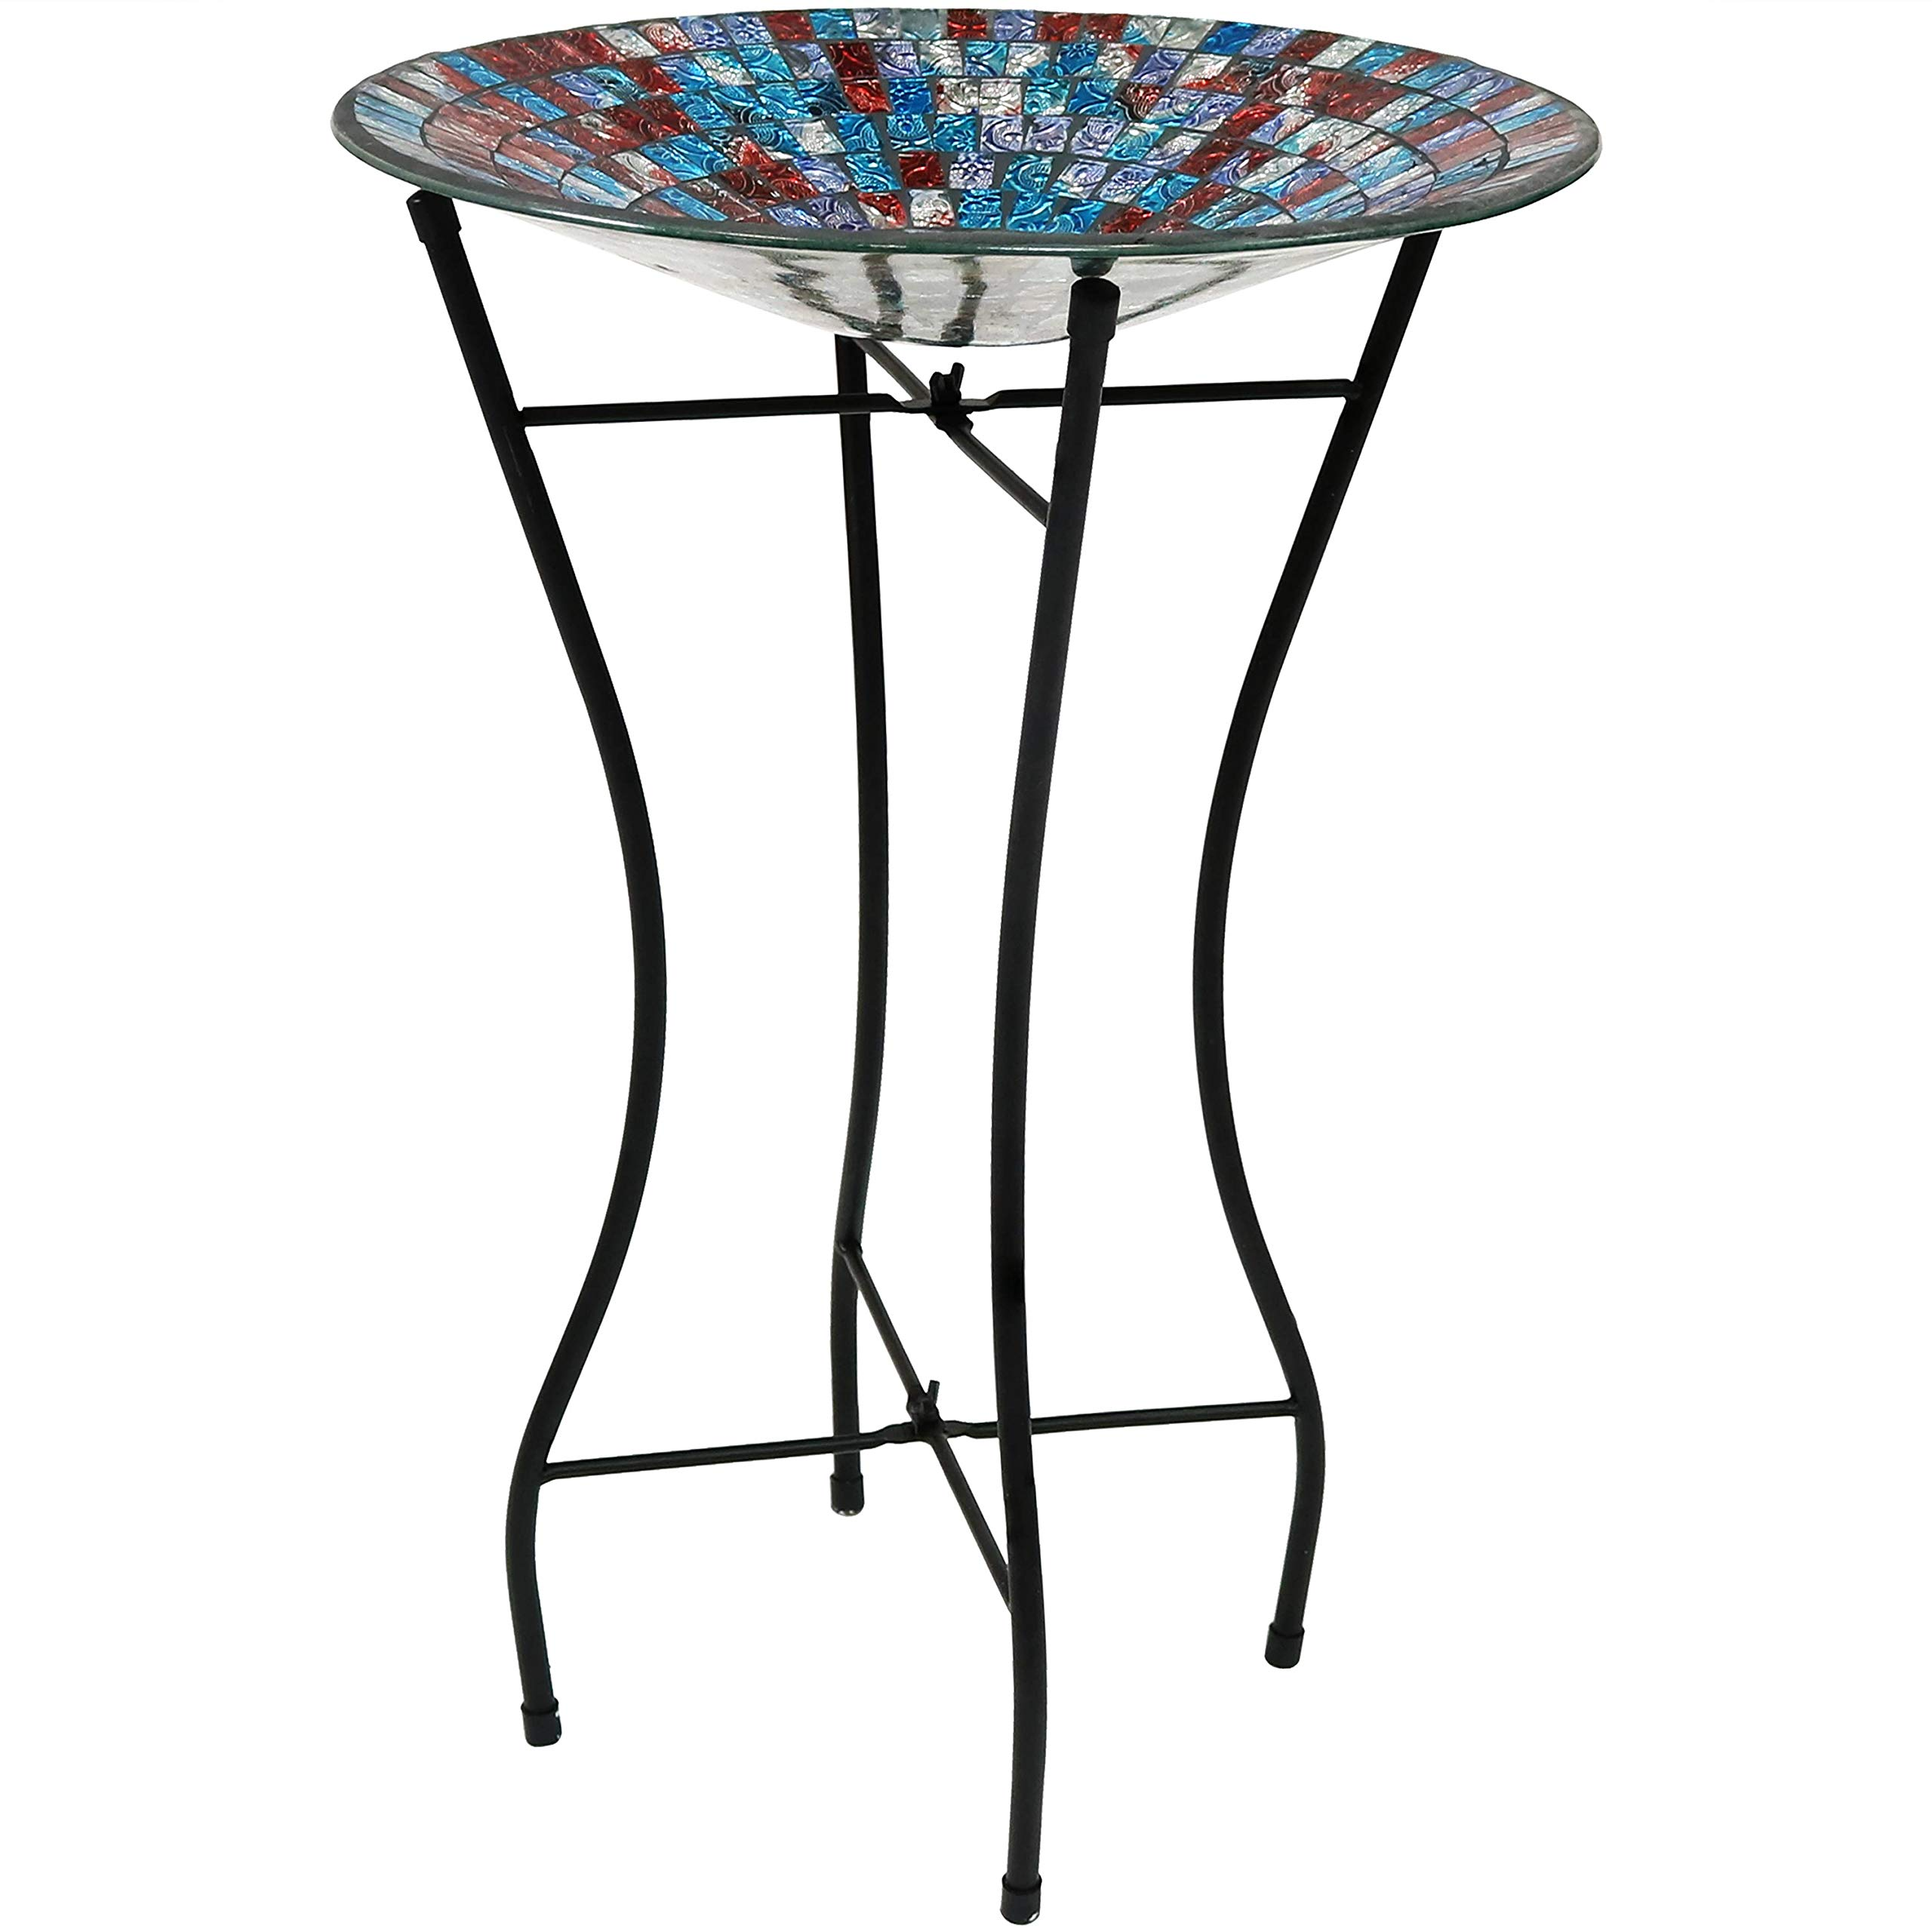 Sunnydaze Outdoor Bird Bath with Stand and Mosaic Tile Design, Multi-Color, Garden and Lawn Decor, 14-Inch Diameter